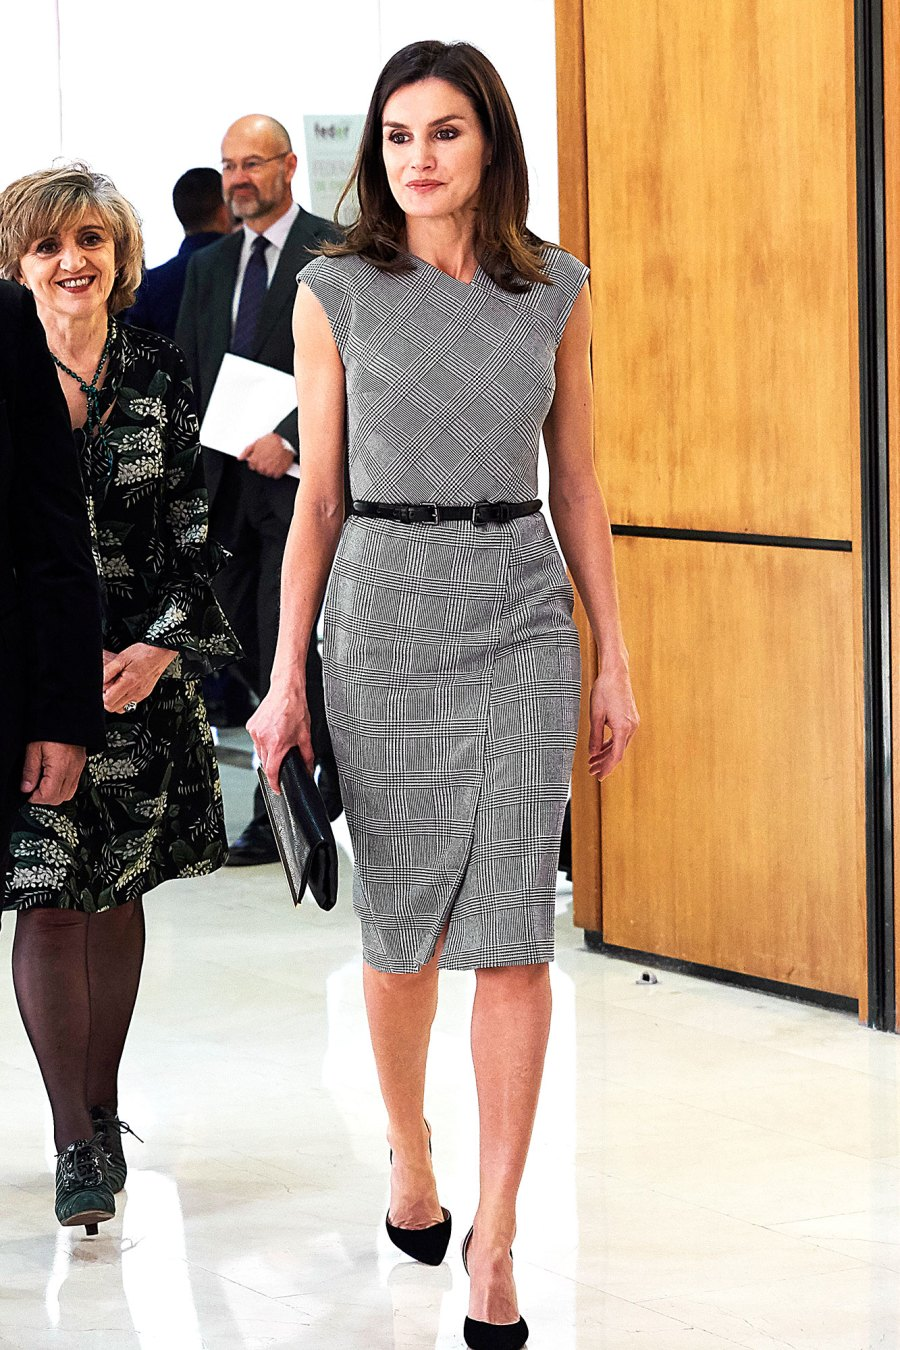 Queen Letizia Is Back With Another Boss Lady Look